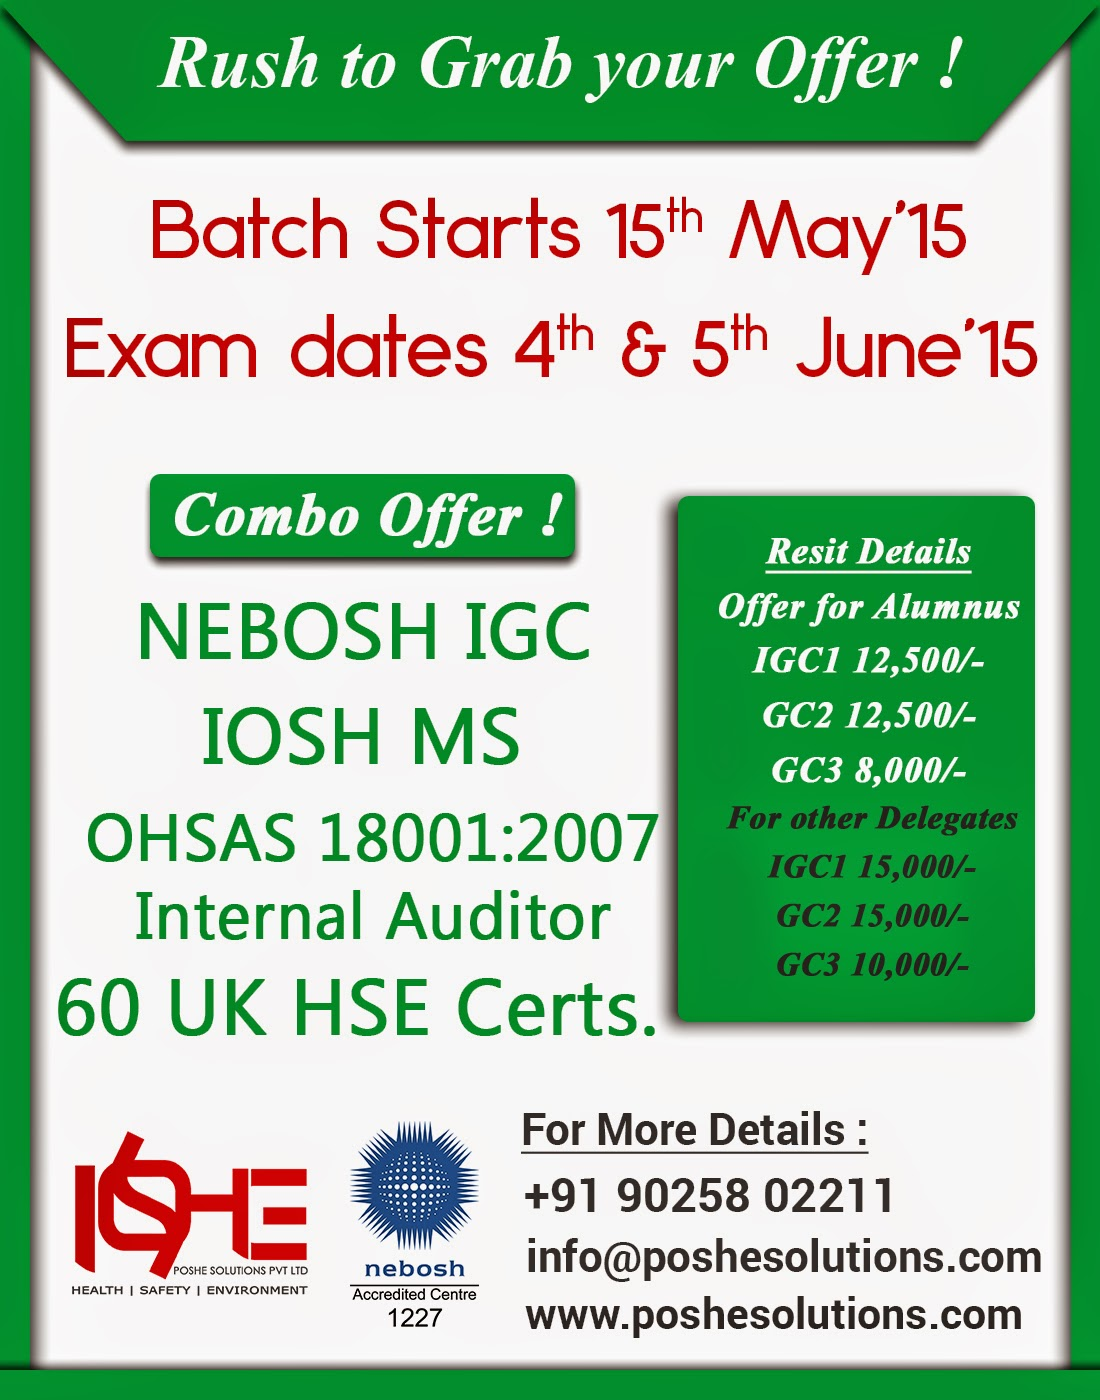 Nebosh IGC Course In Chennai Is An International General Certificate Occupational Health And Safety